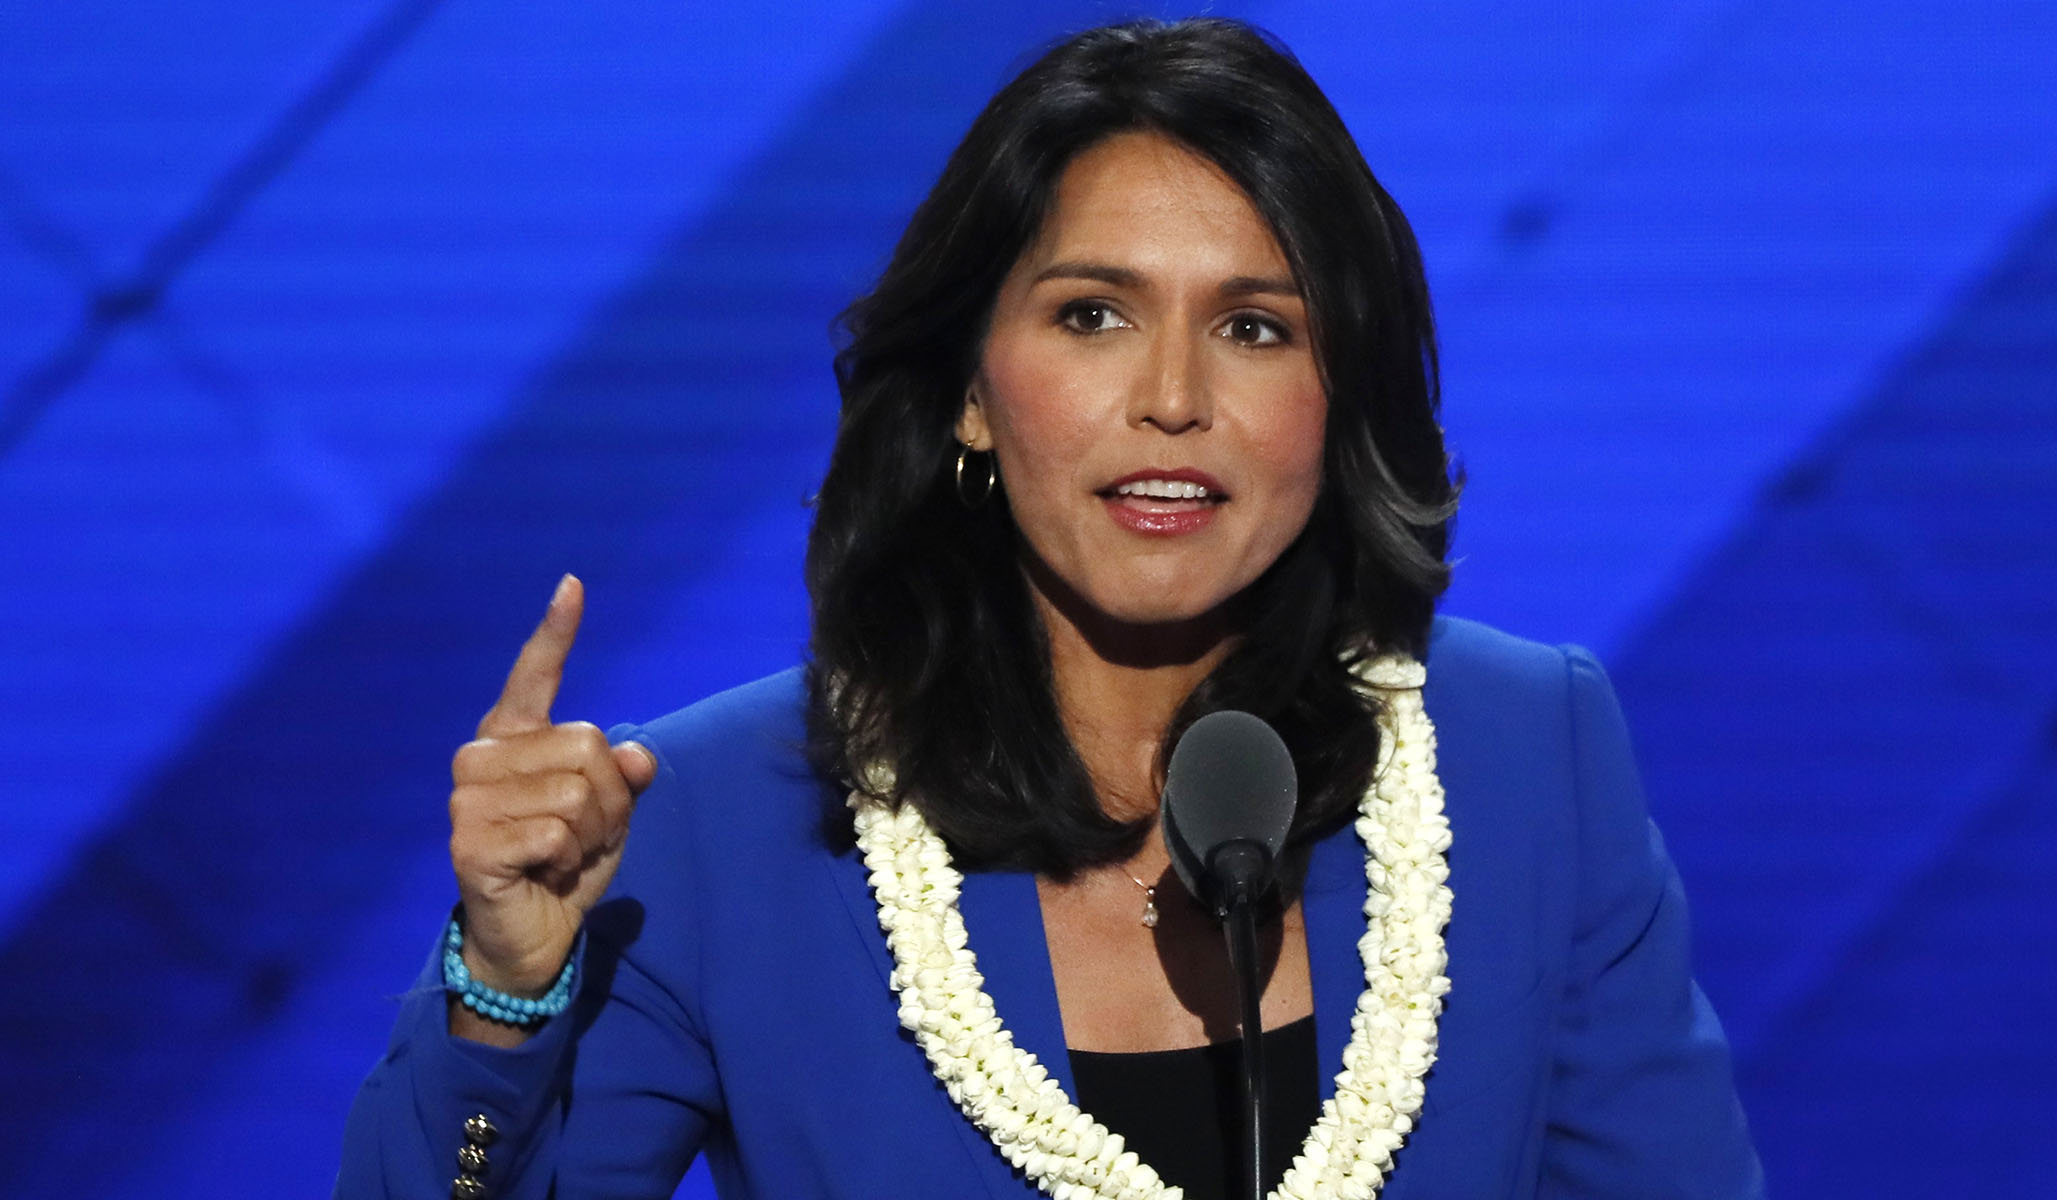 Bernie Sanders Dismisses Clinton's 'Outrageous' Claim that Gabbard Is a 'Russian Asset'